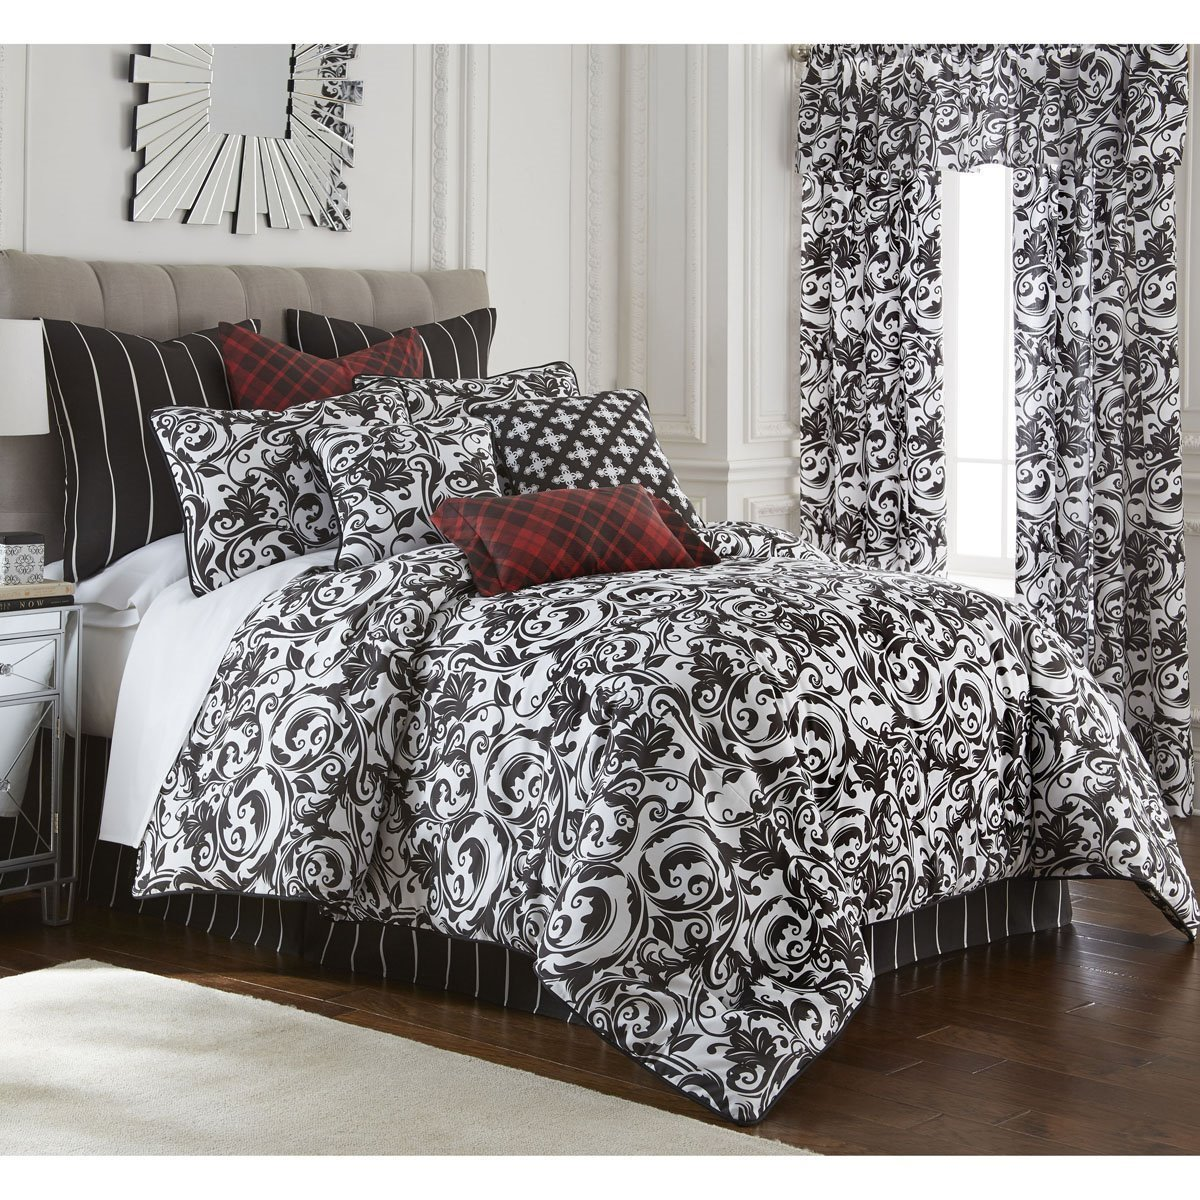 Scrollwork Duvet Cover Set Twin Size